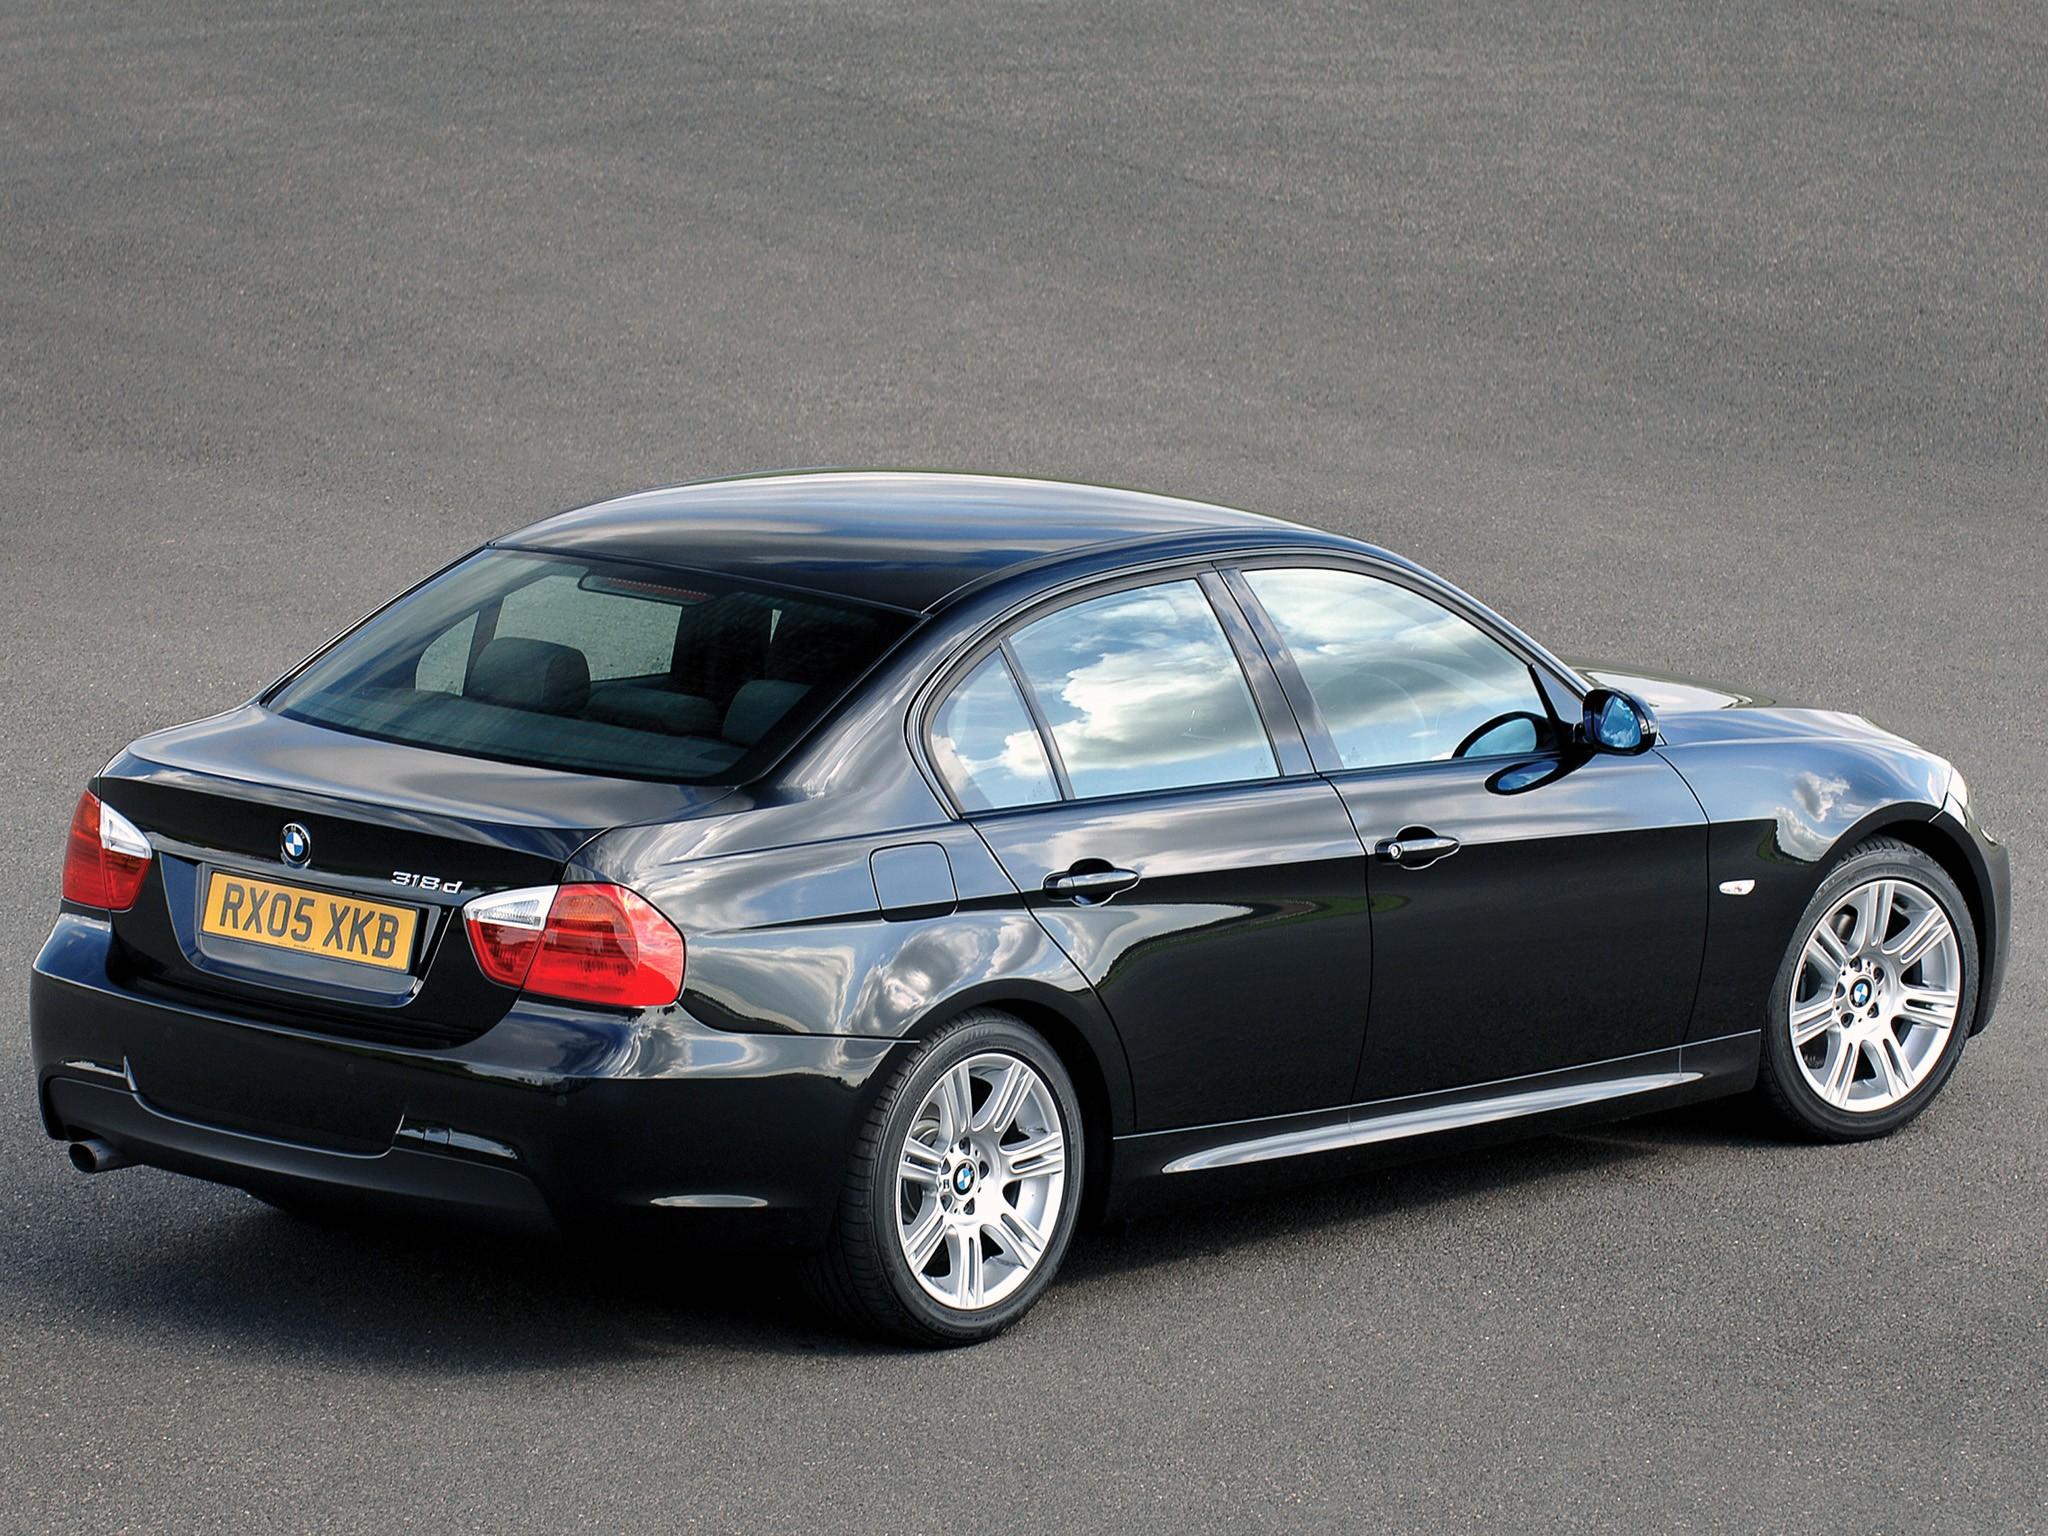 bmw 3 series e90 specs 2005 2006 2007 2008 autoevolution. Black Bedroom Furniture Sets. Home Design Ideas